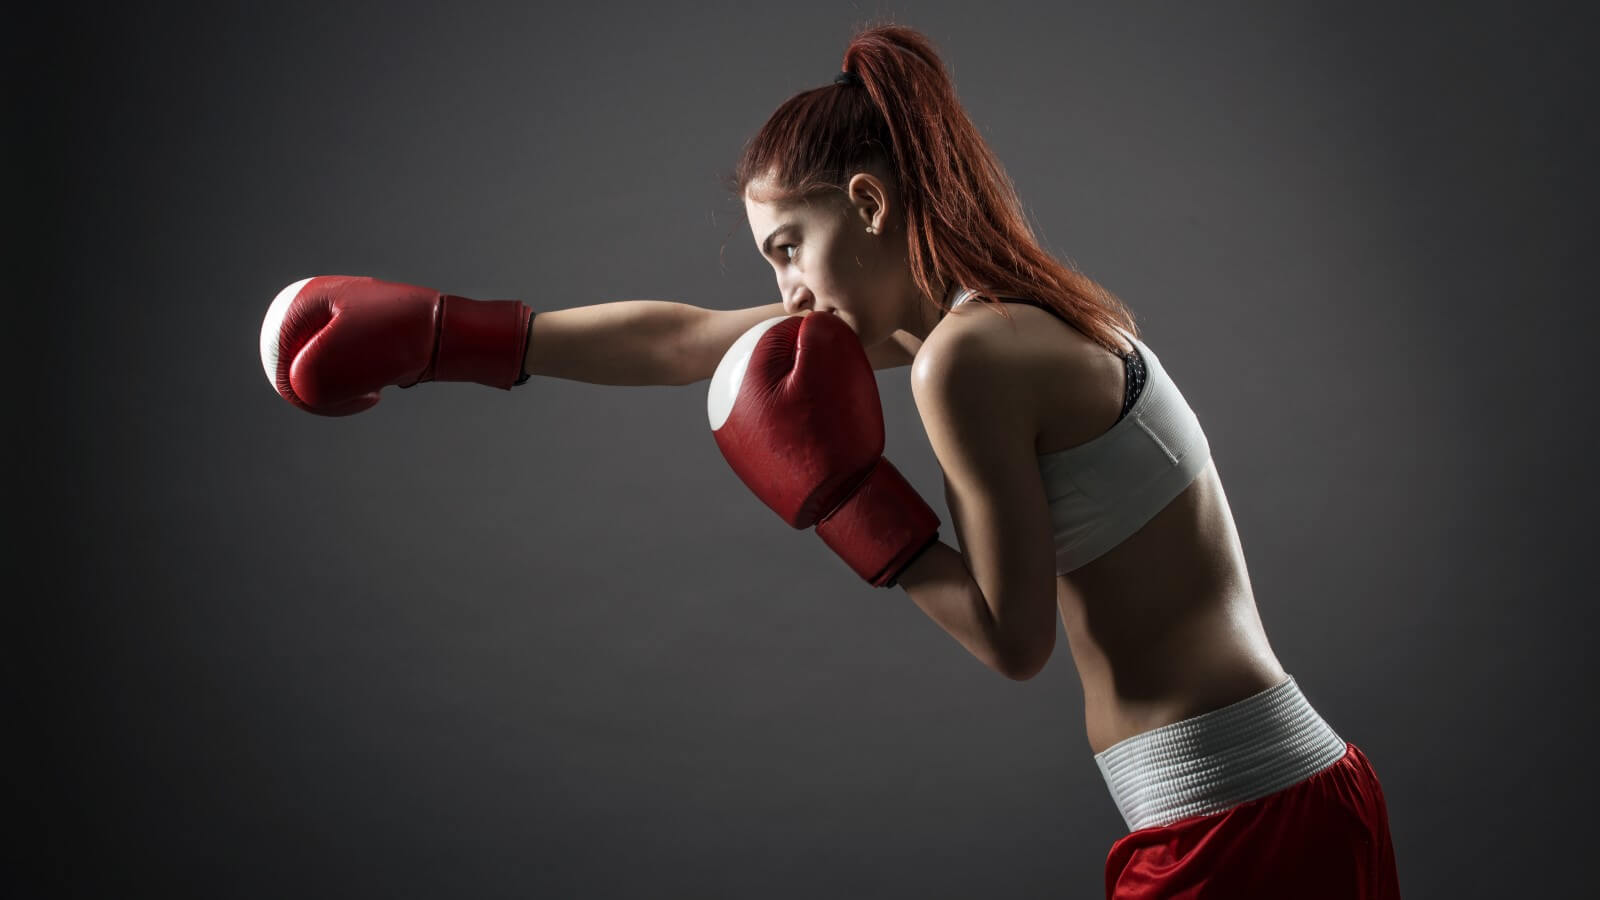 Woman practicing right jab in red boxing gloves